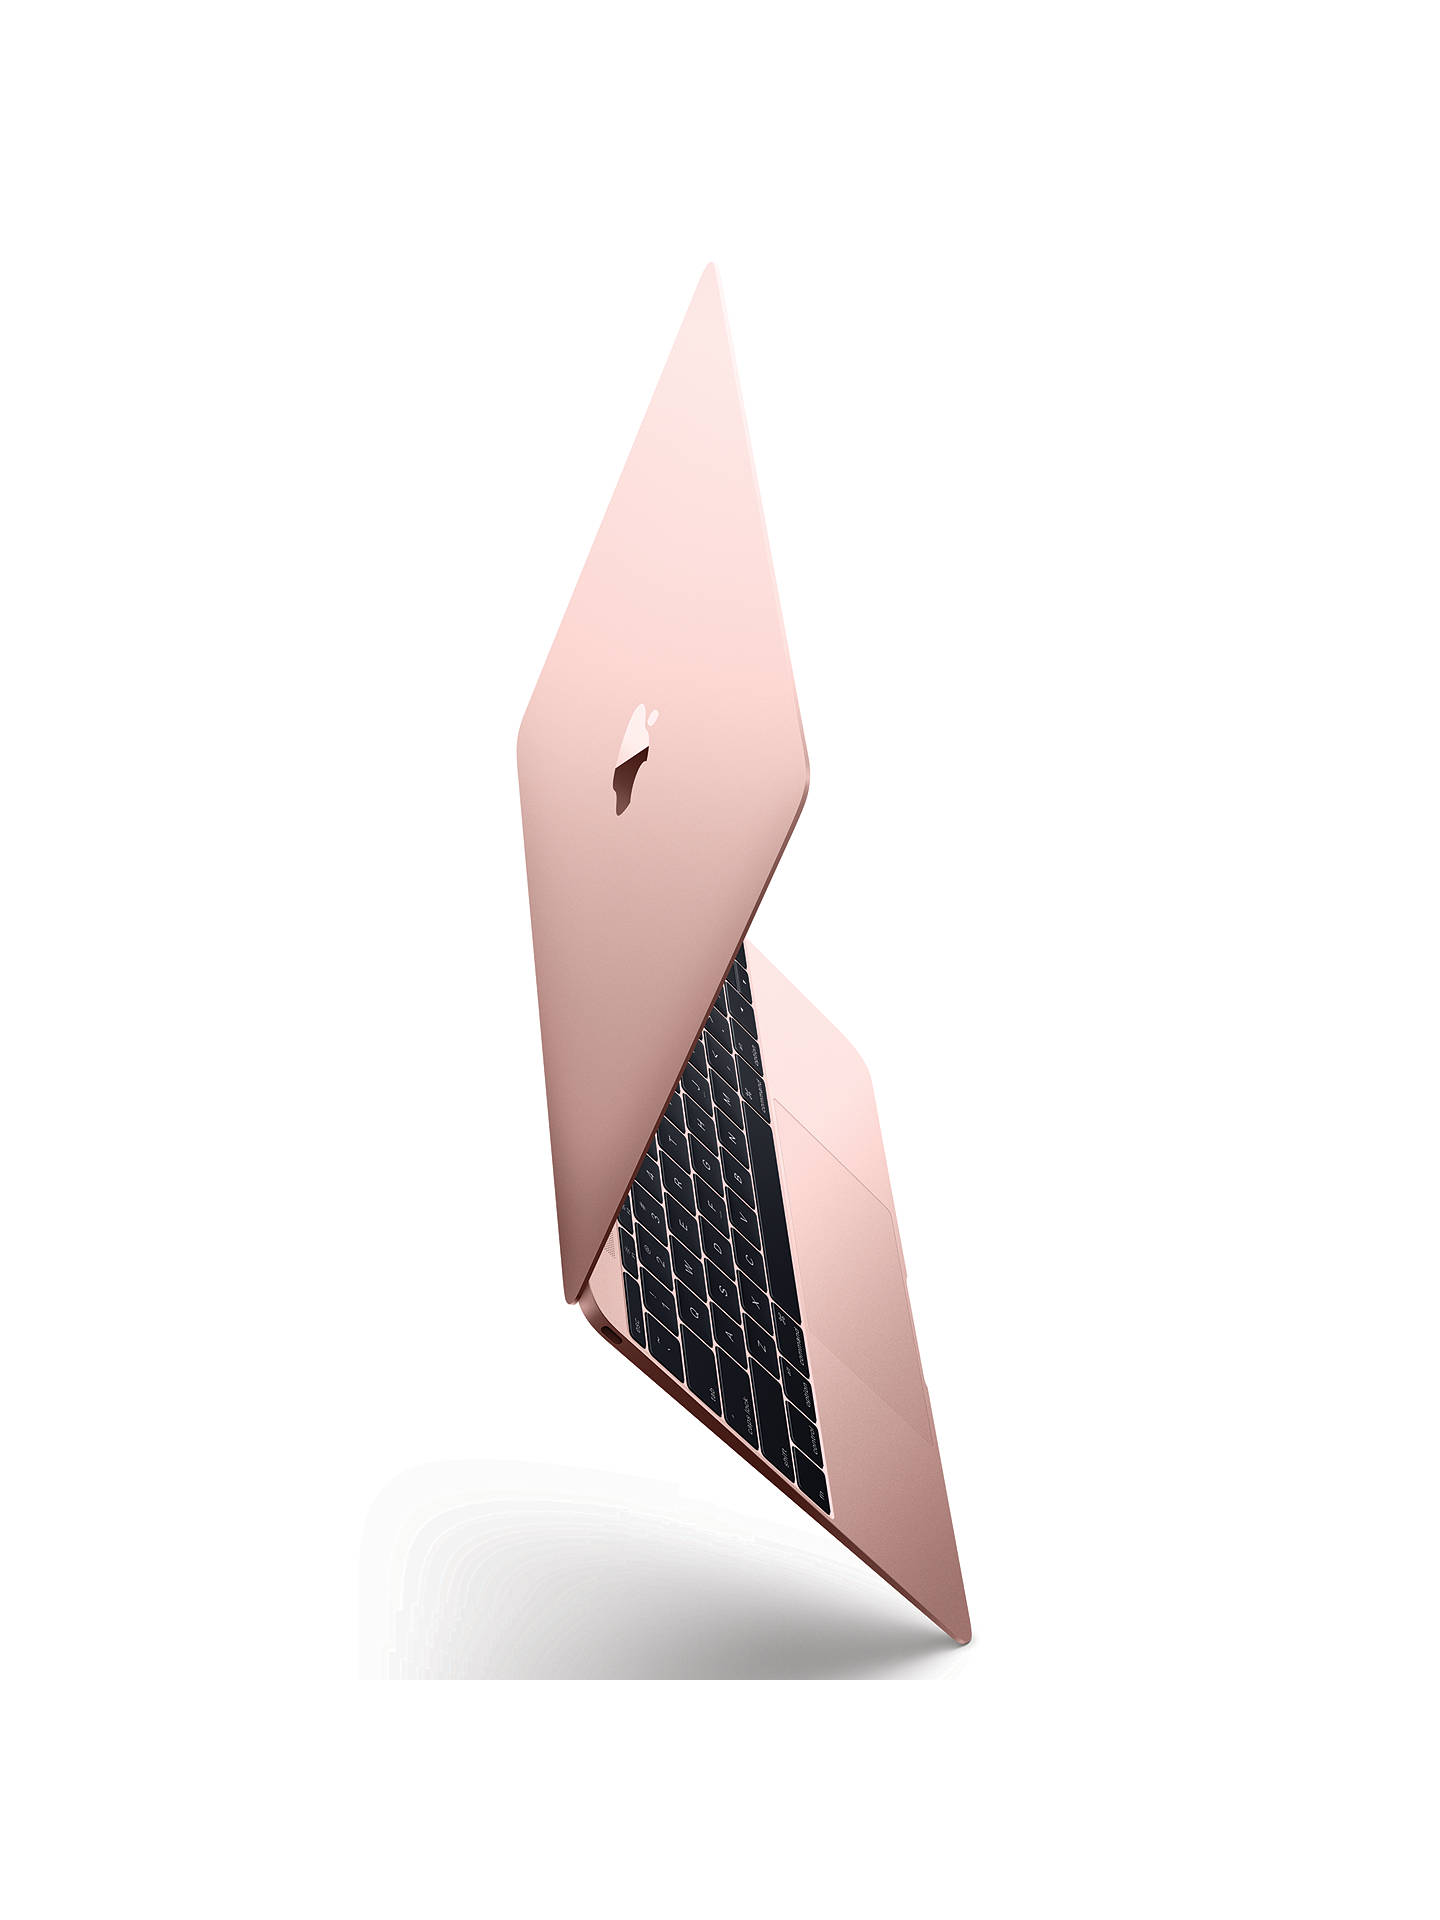 "Buy 2017 Apple MacBook 12"", Intel Core m3, 8GB RAM, 256GB SSD, Intel HD Graphics 615, Rose Gold Online at johnlewis.com"